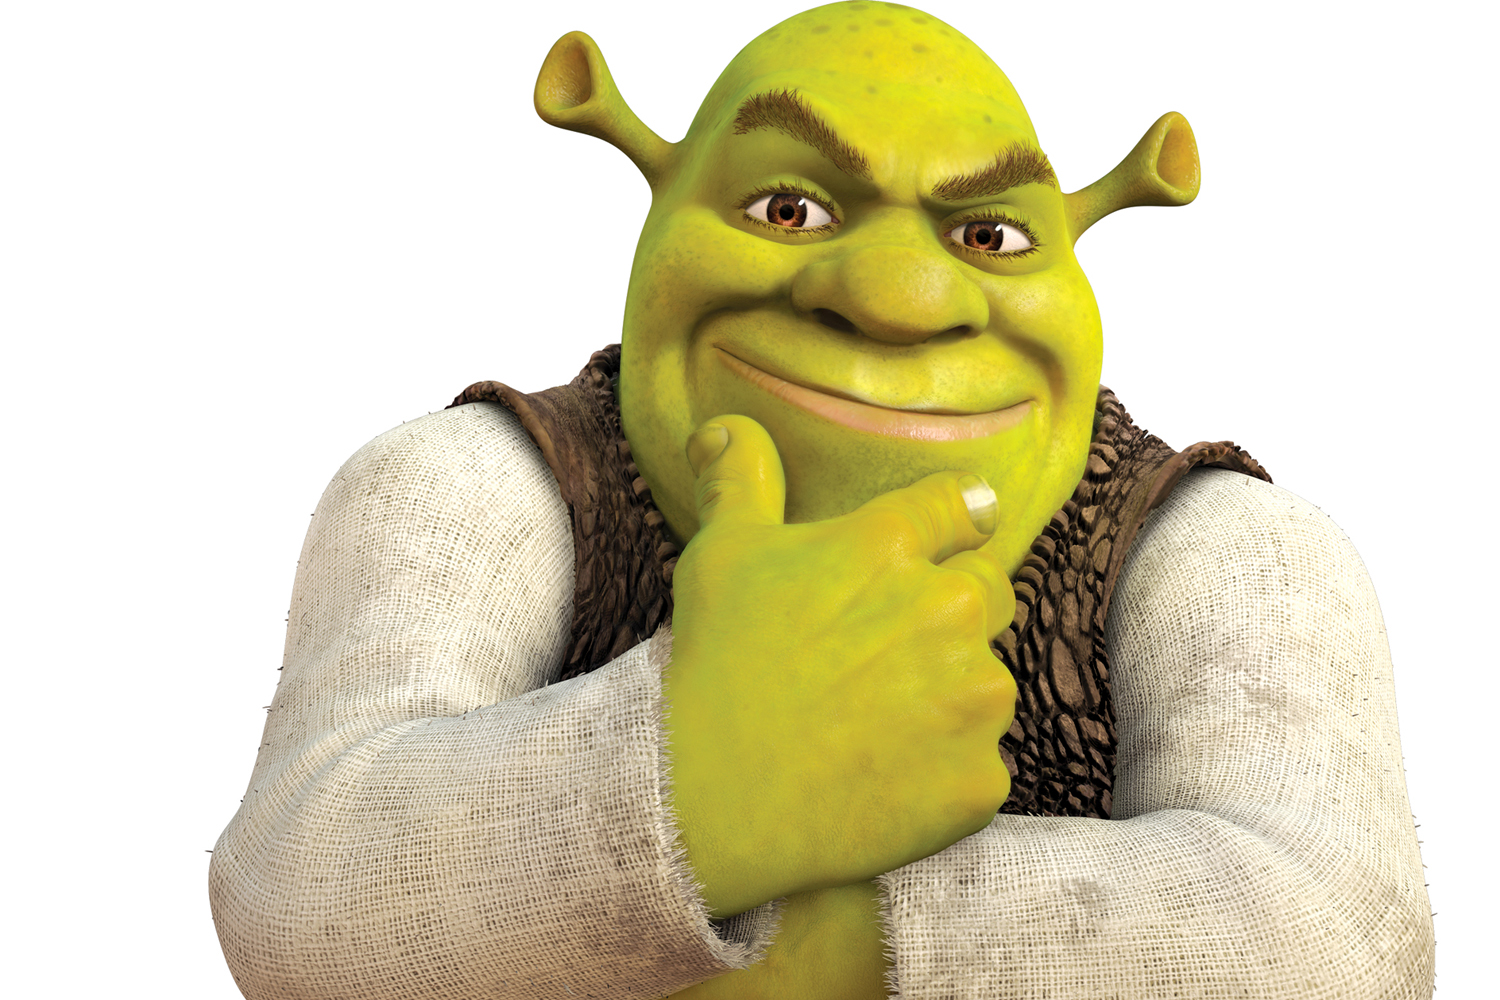 Shrek | The Walking Dank Wikia | Fandom powered by Wikia